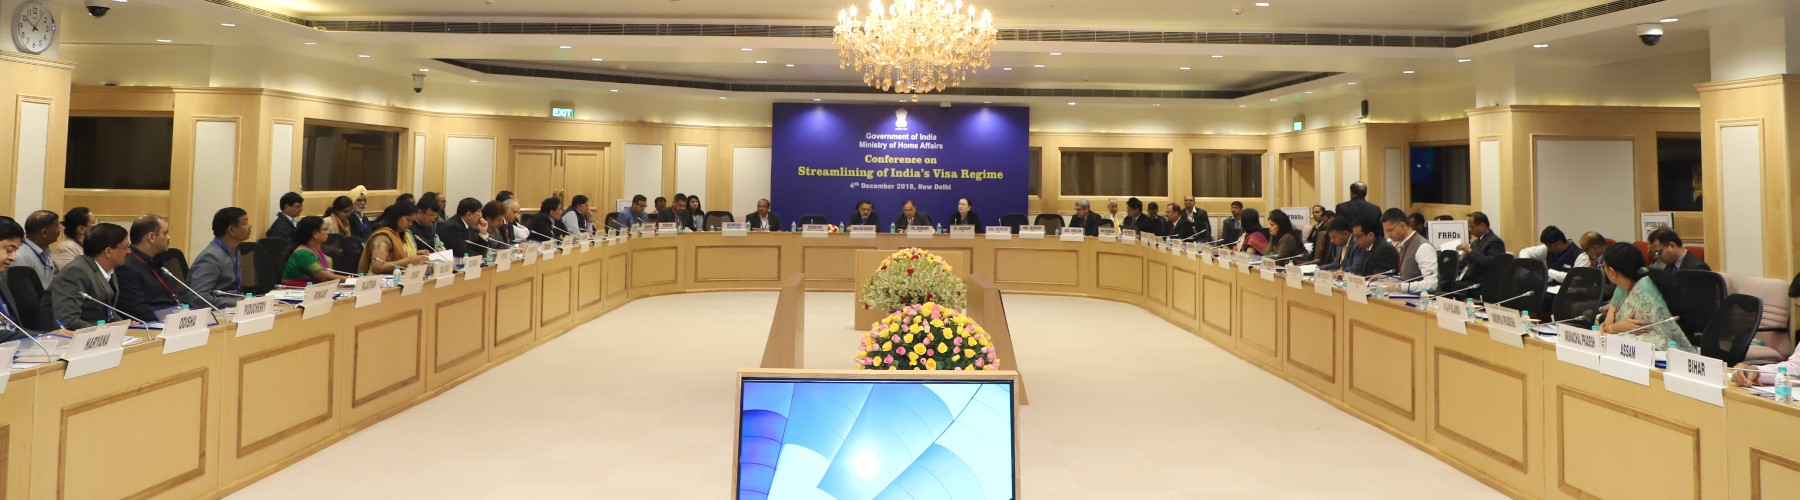 The Union Home Secretary Shri Rajiv Gauba chairing a conference on Streamlining of India(s) Visa regime in New Delhi on December 4, 2018.